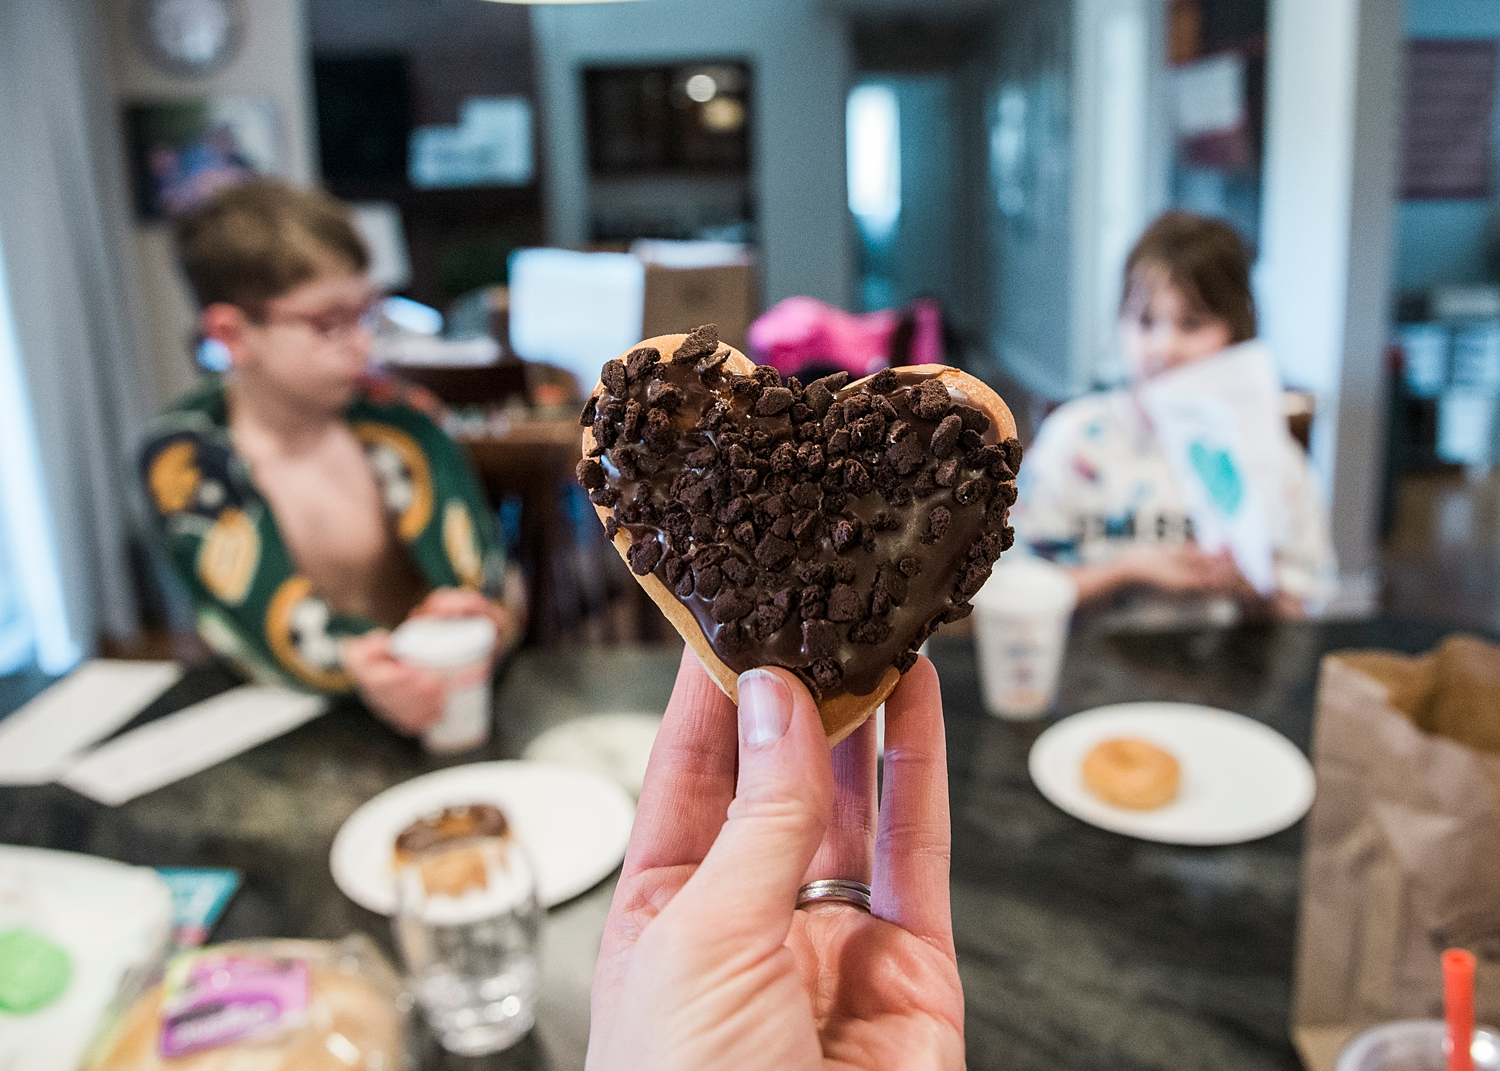 A little valentine's treat for the kids from Dunkin Donuts! |Getting Unschooled is a family lifestyle blog about unschooling, over-40 style, and non-toxic beauty. Thanks for repinning!